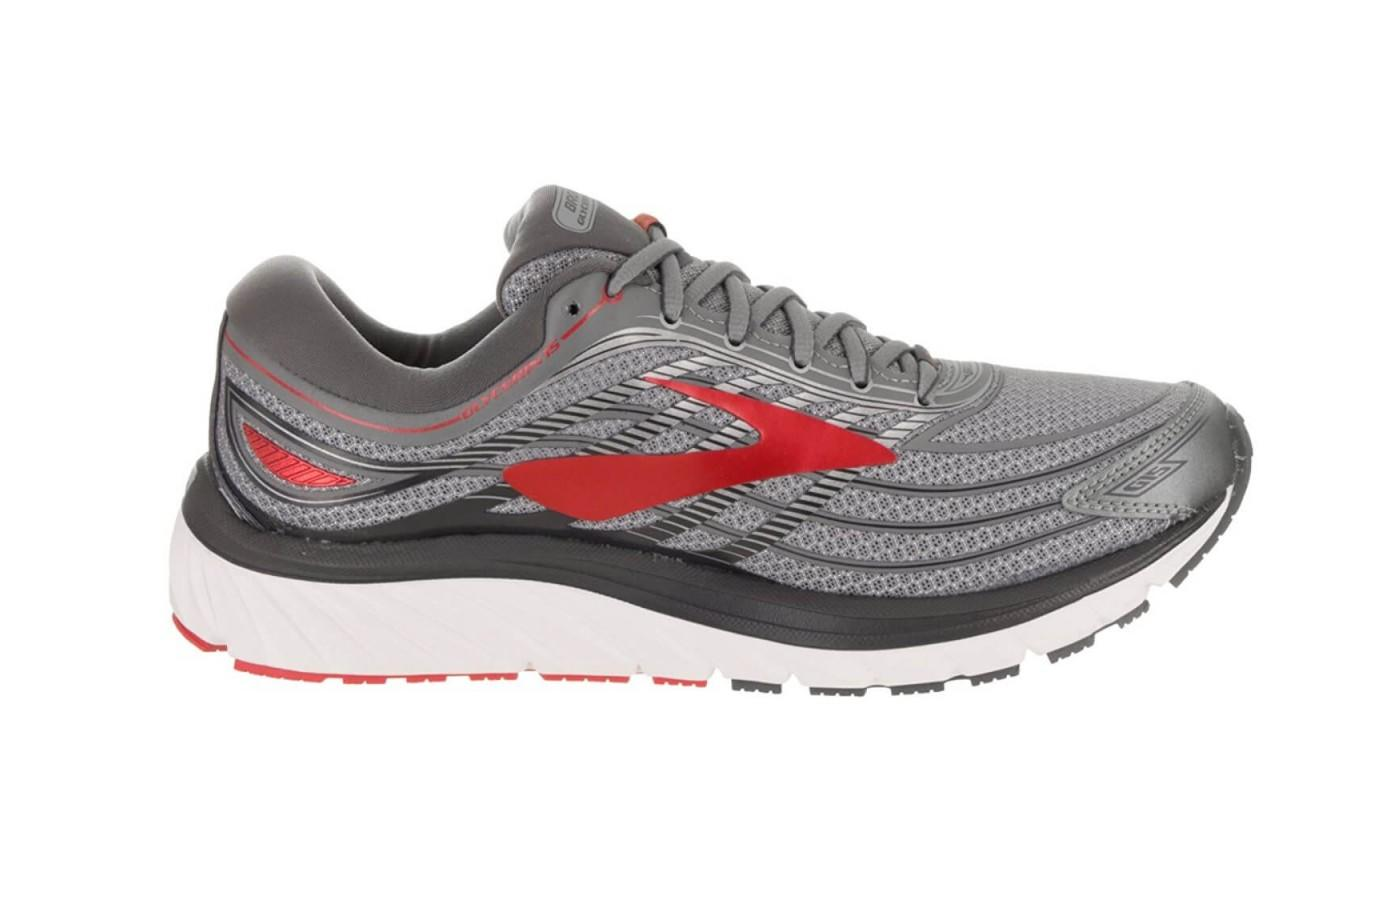 Here's a look at the profile of the Brooks Glycerin 15